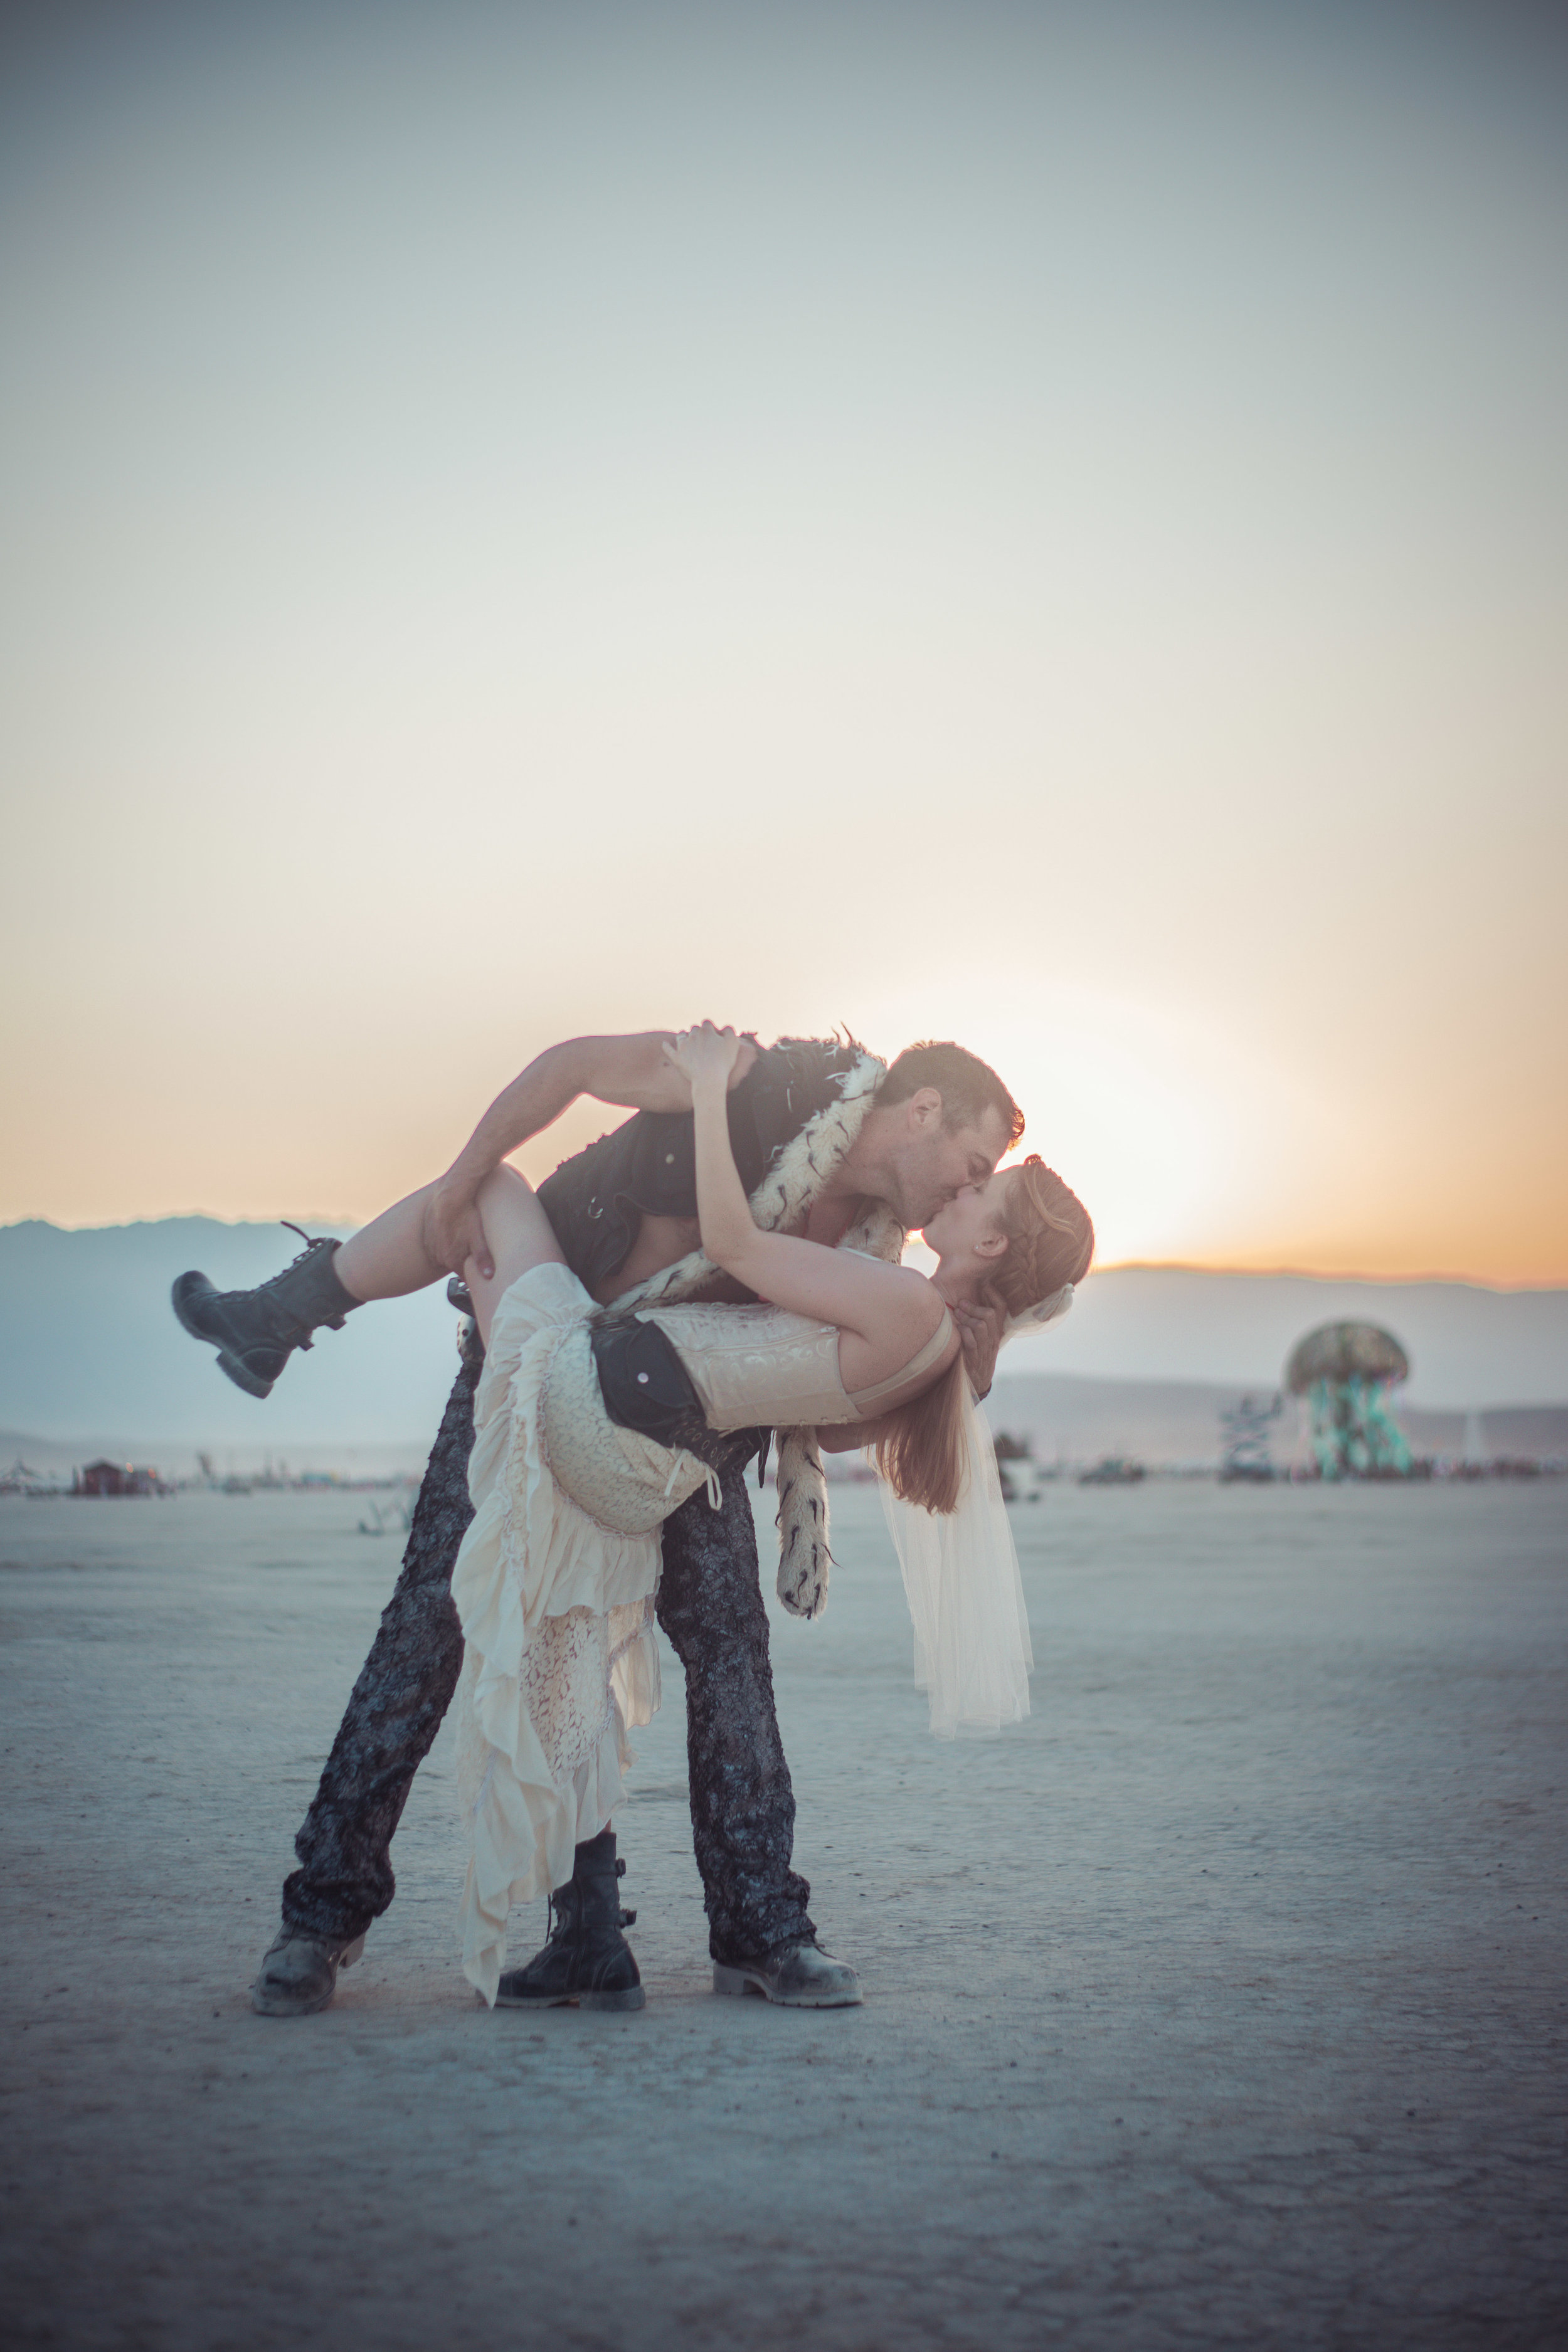 Brie'Ana Breeze Photography & Media - Burning Man 2018-3551-2.jpg